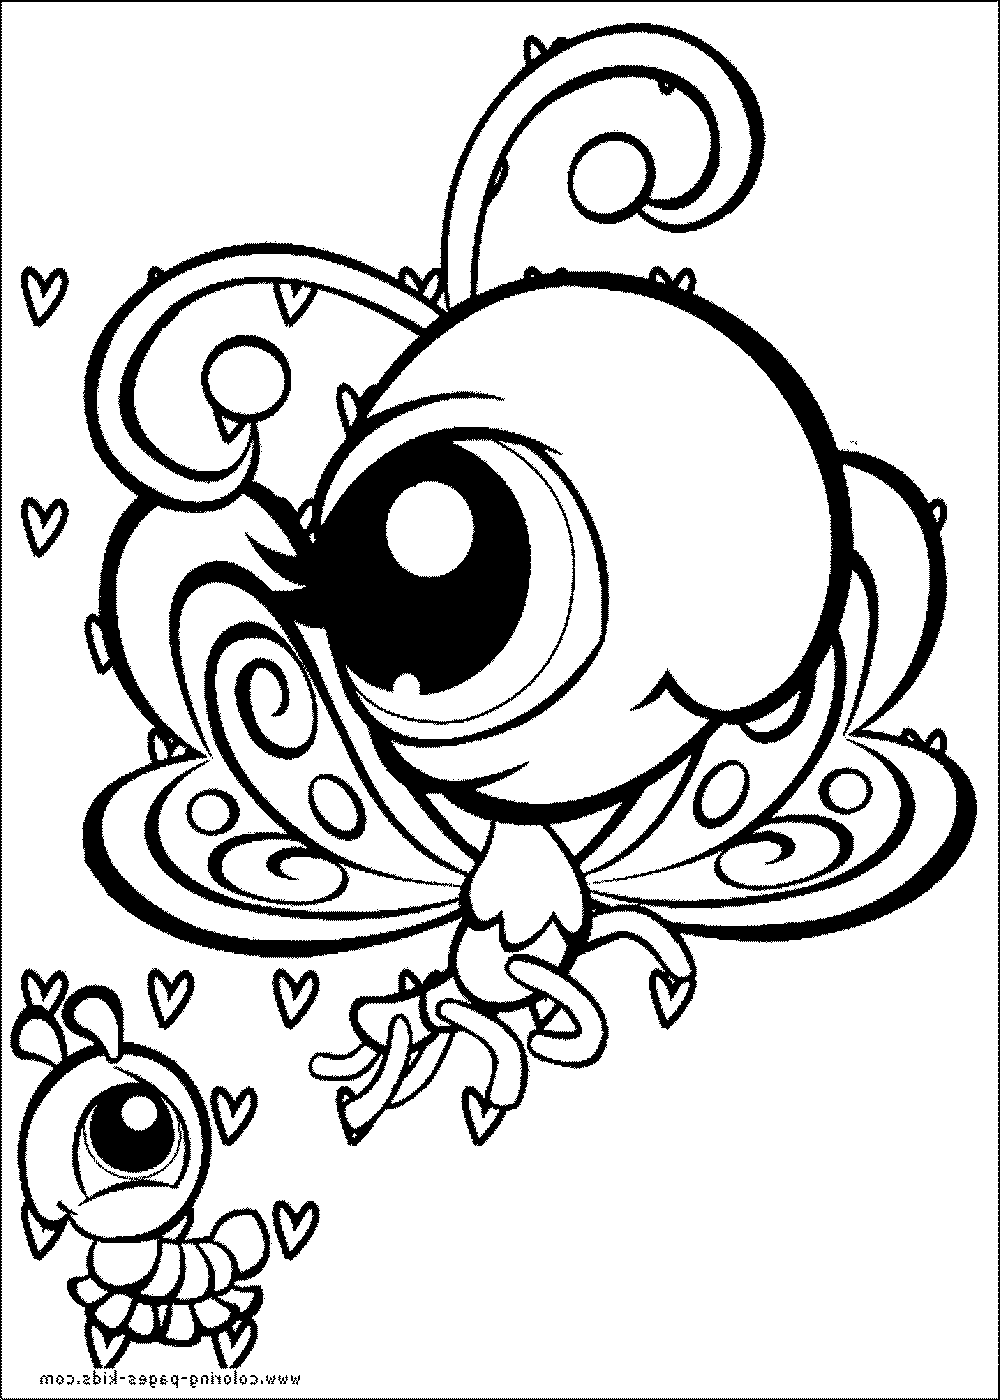 Littlest pet coloring book pages coloring pages for Littlest pet shop coloring pages dog